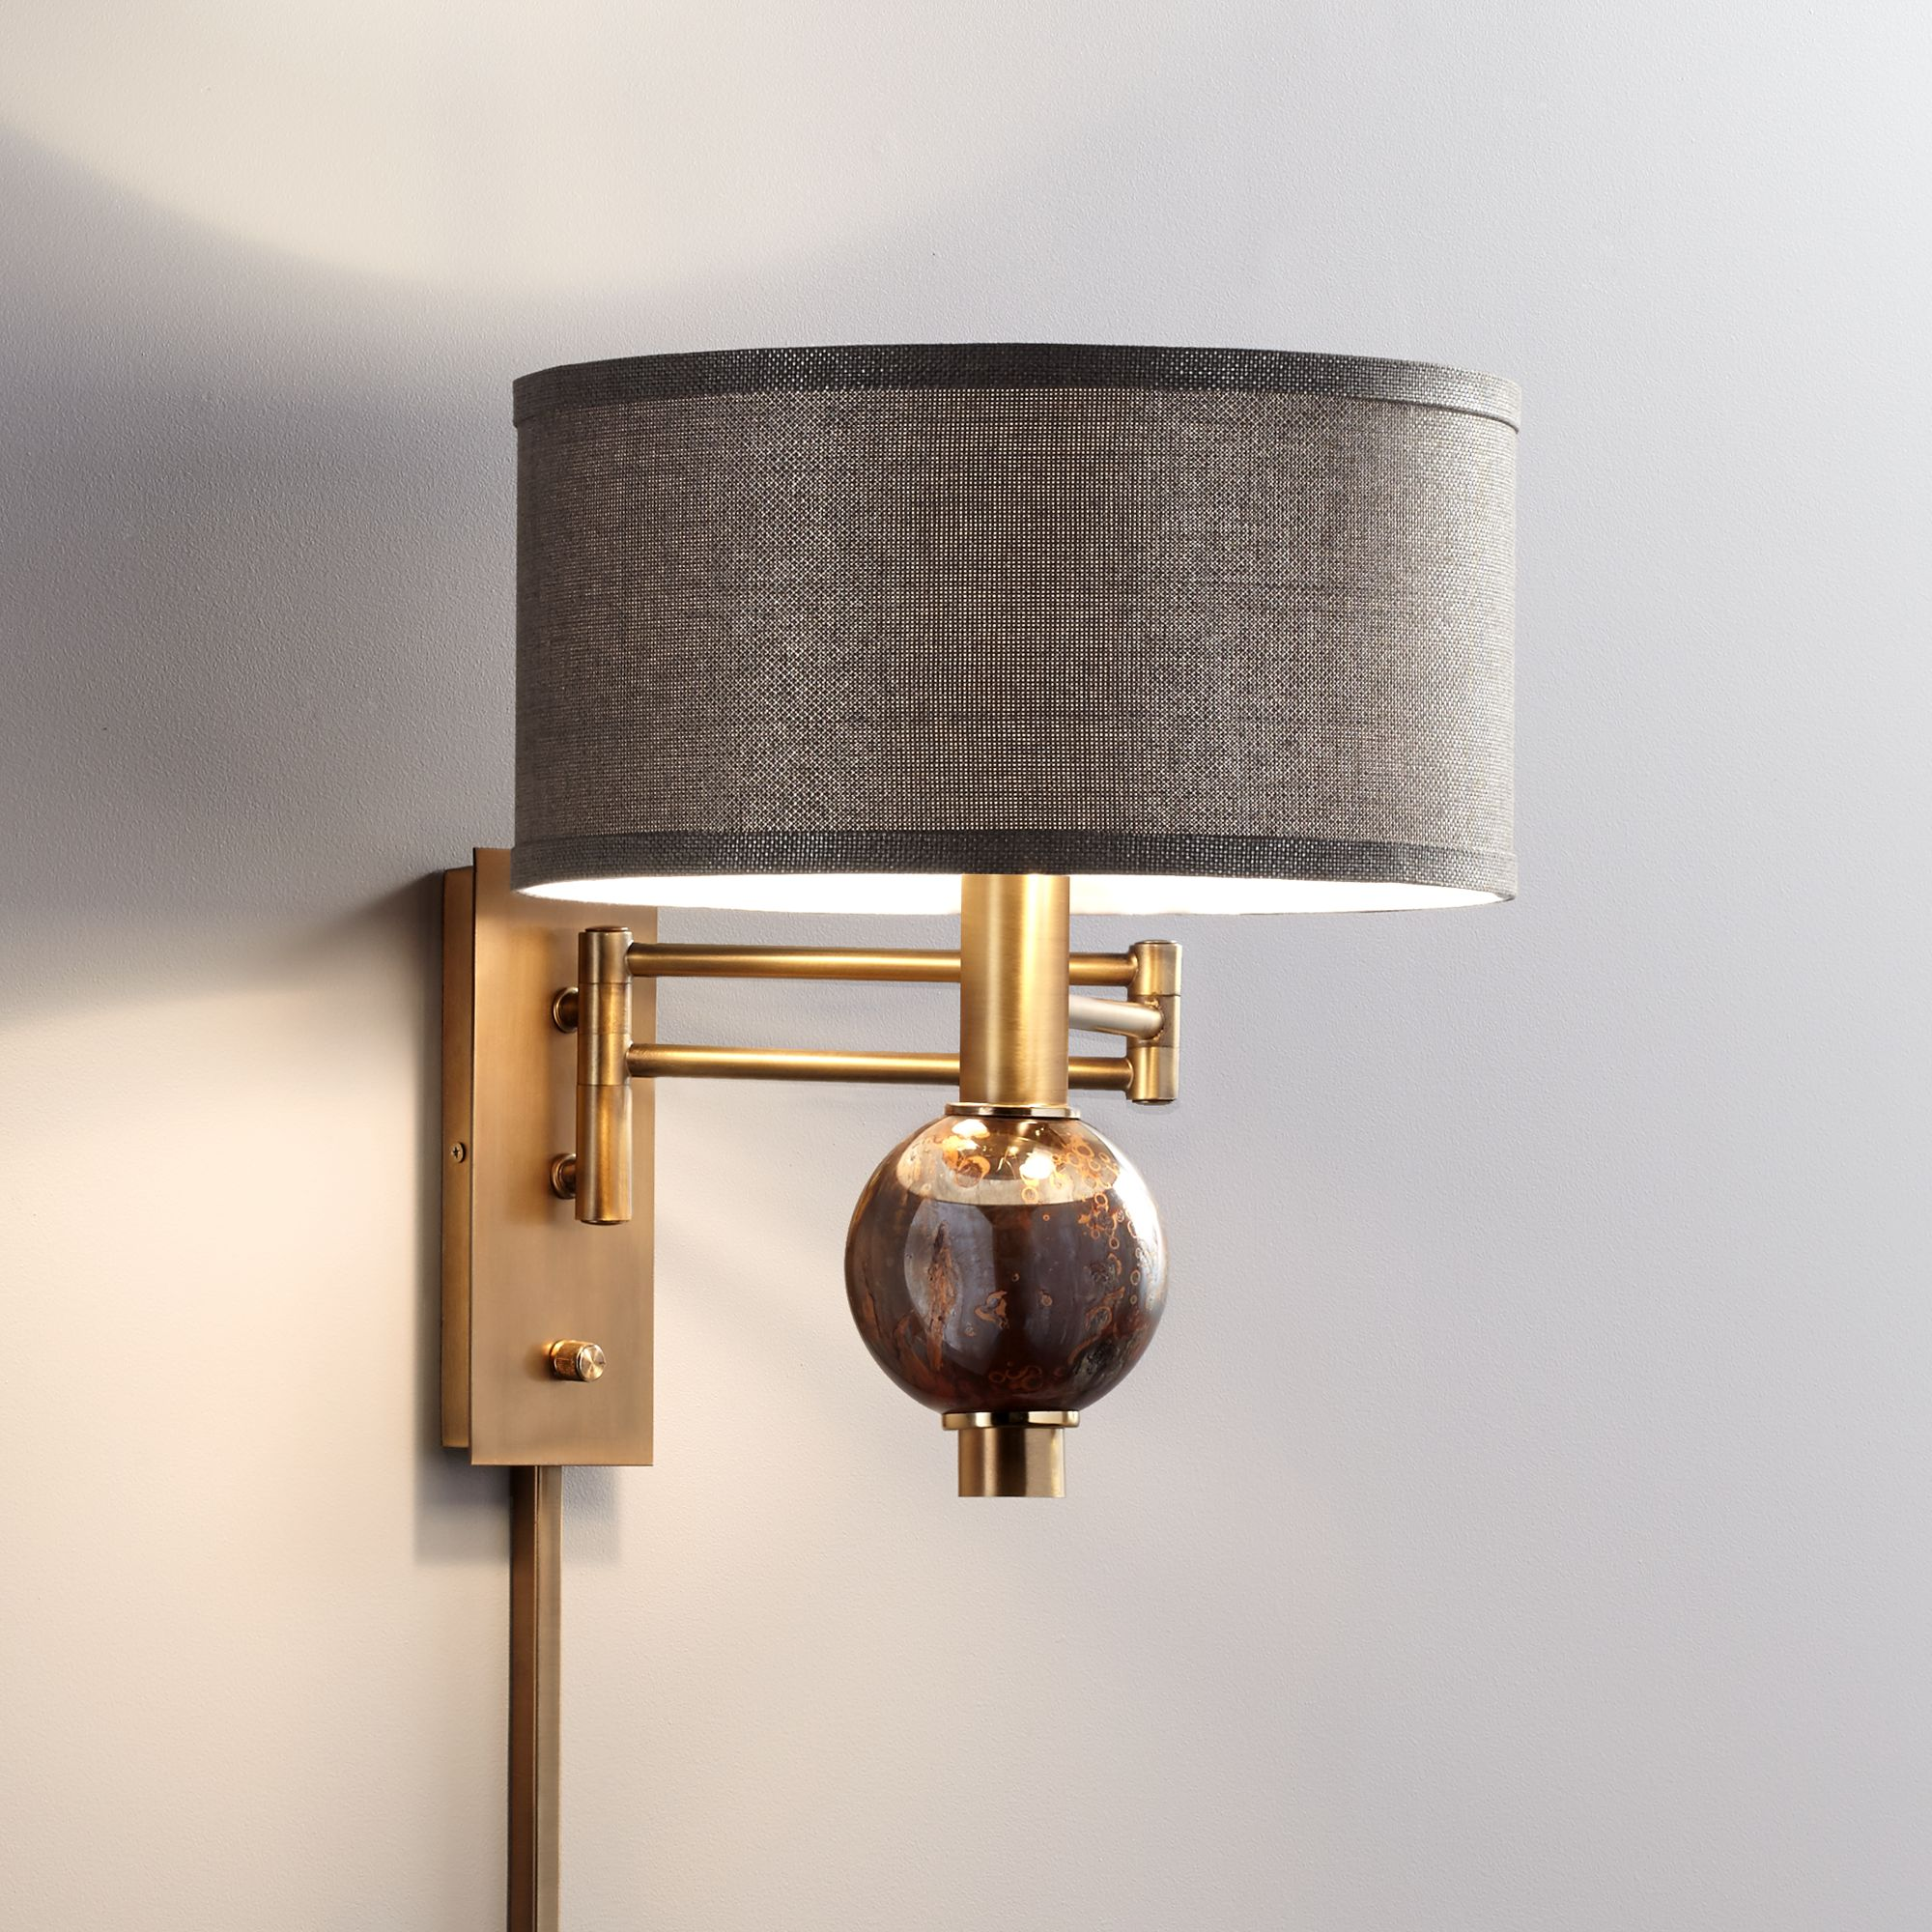 Swing Wall Lamp Details About Richford Brass Plug In Swing Arm Wall Lamp With Dimmer